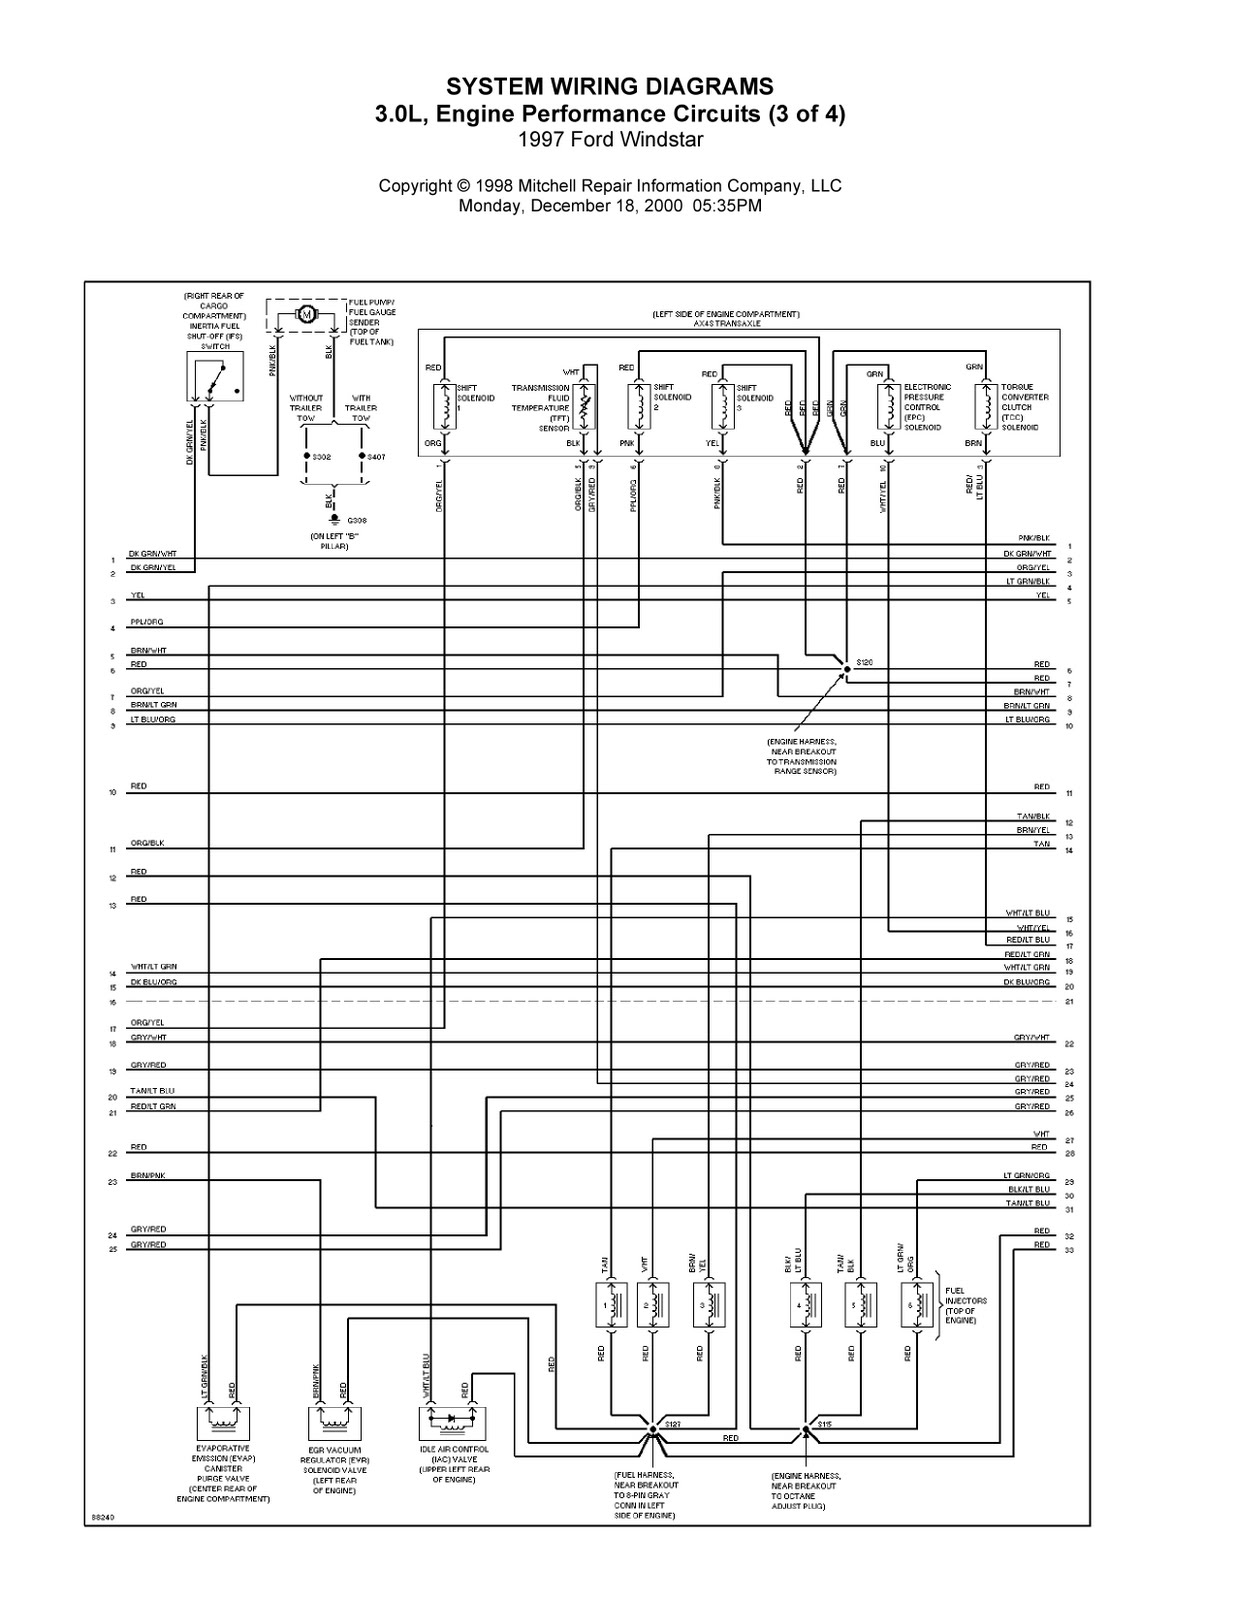 1998 Ford Windstar Wiring Schematic Trusted Diagrams 2001 Fuse Box Diagram 1997 Complete System Rh Wiringdiagramsolution Blogspot Com 38 Engine